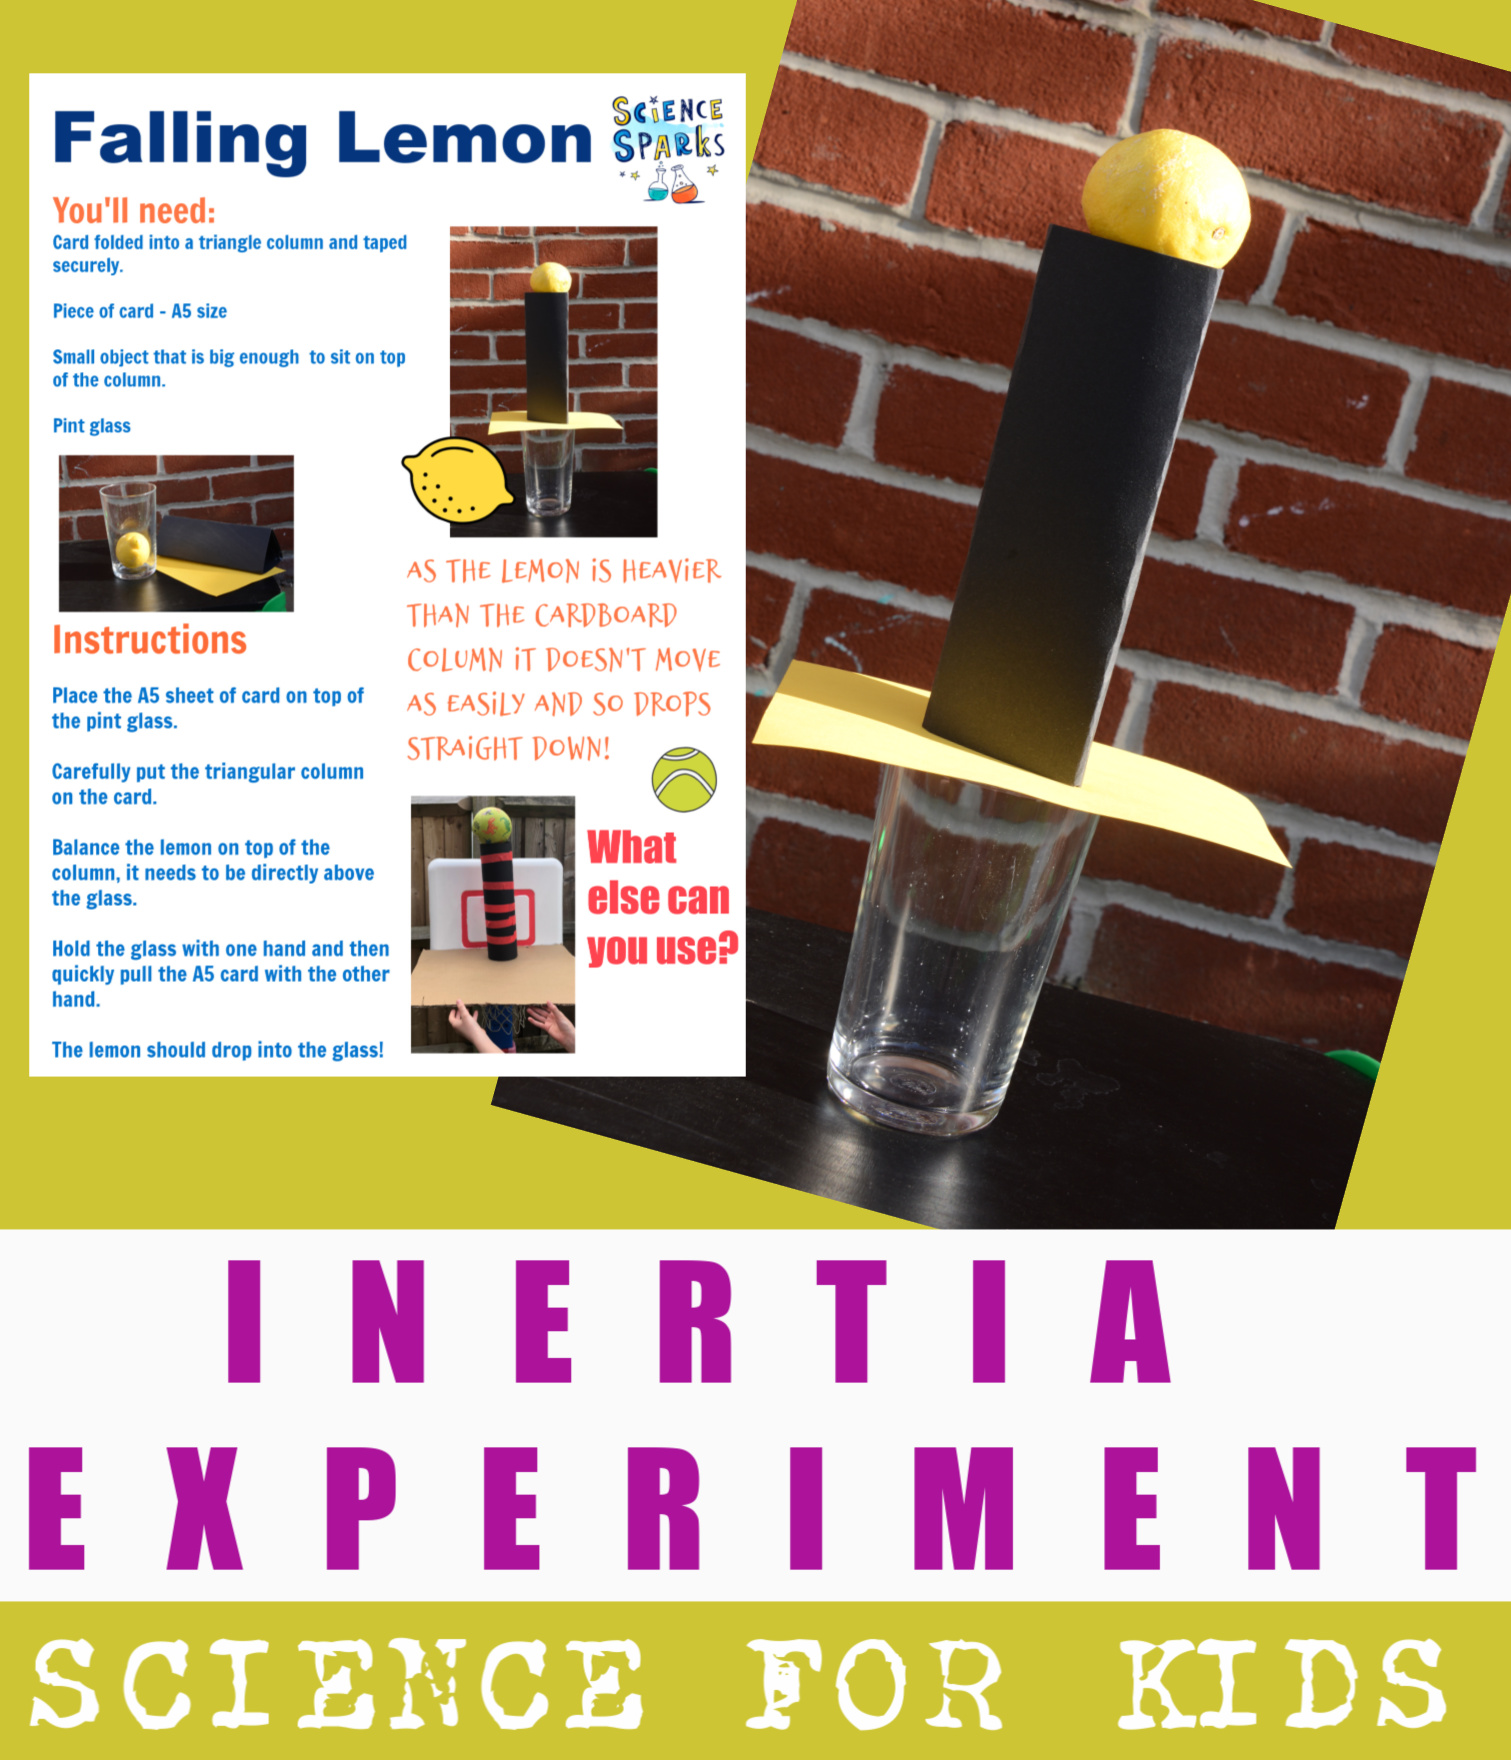 inertia experiment with a lemon, cardboard and a glass